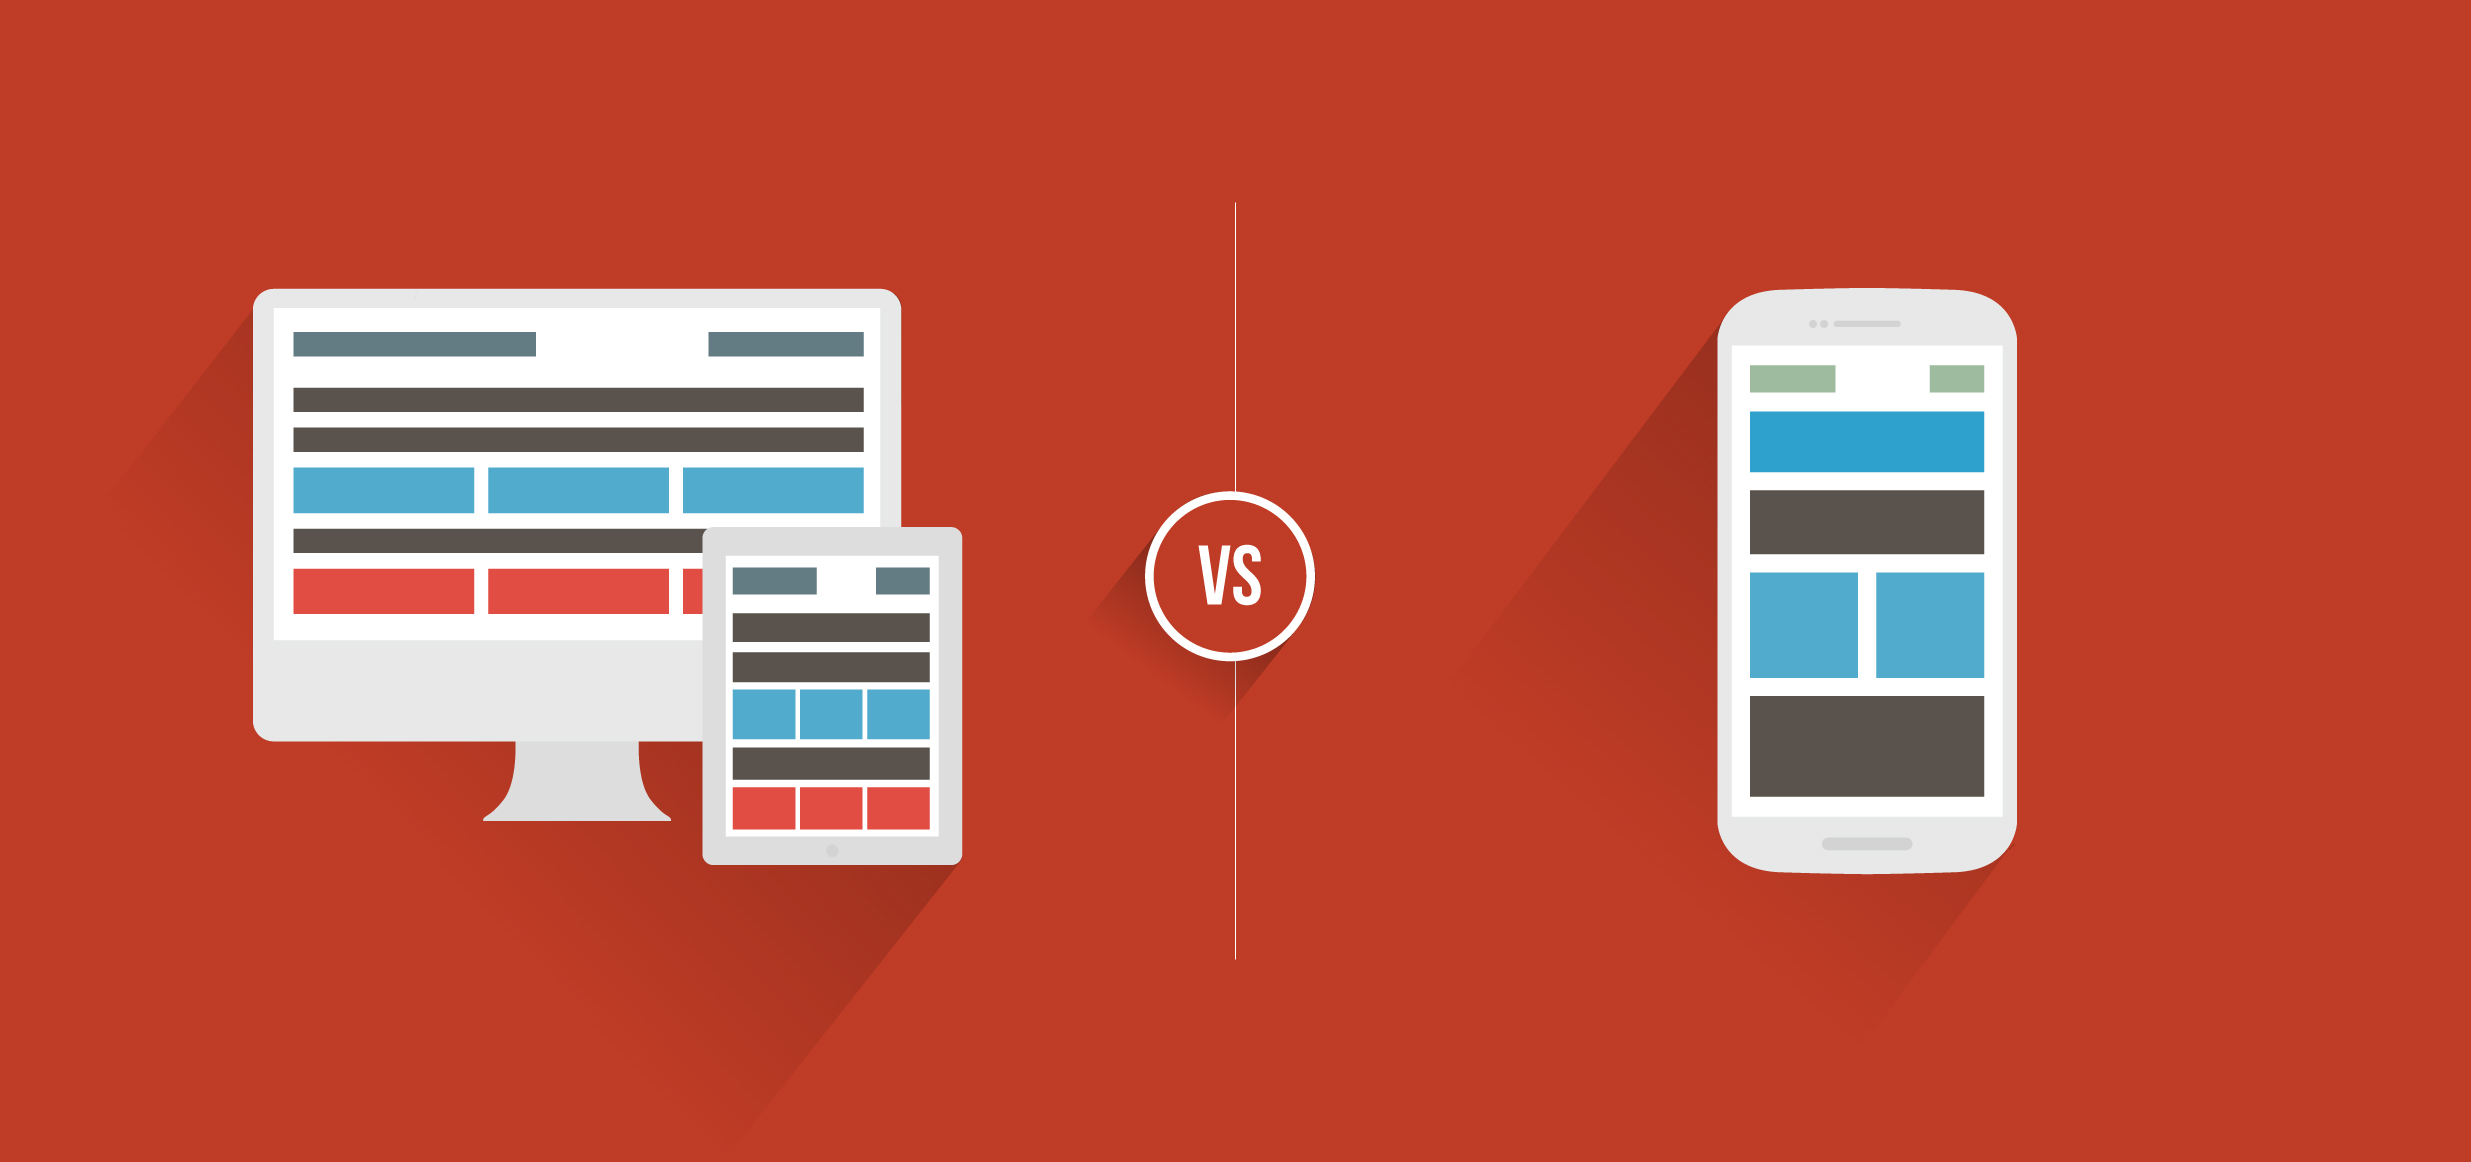 Benefits of Mobile App Development vs Responsive Web Design